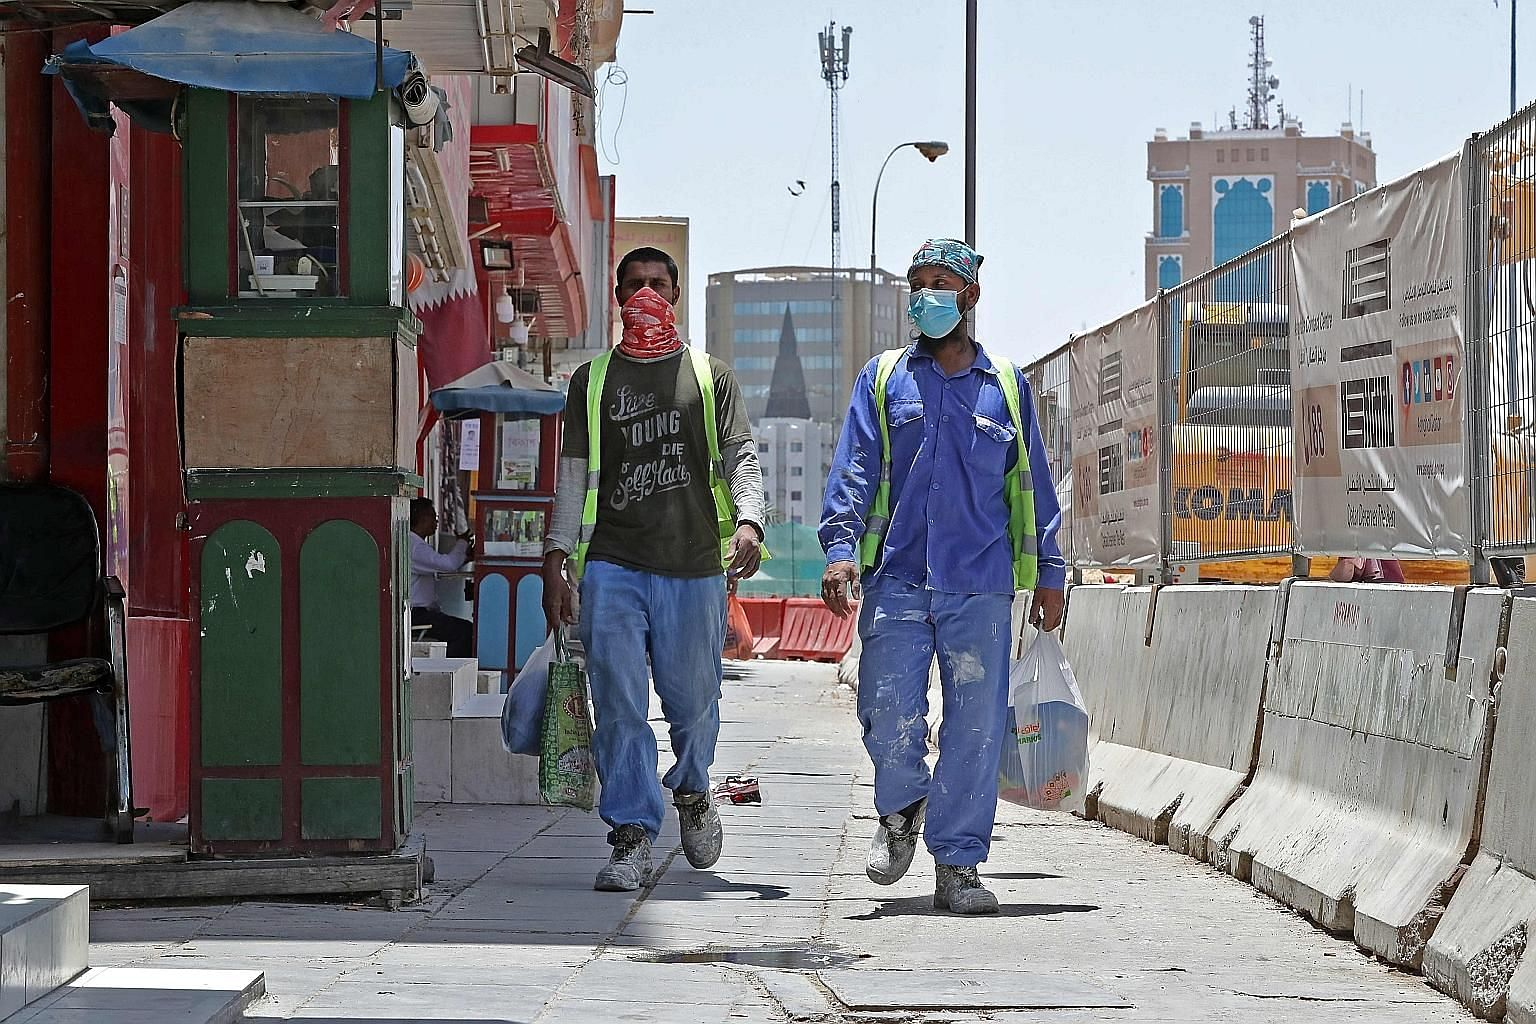 Workers wearing protective masks on a street in Doha, Qatar, on May 17. Like in Singapore, the outbreak in Qatar has centred on its foreign workers, who outnumber Qataris in the workforce by nearly 20 to one. Qatar's ambition to host the World Cup ha